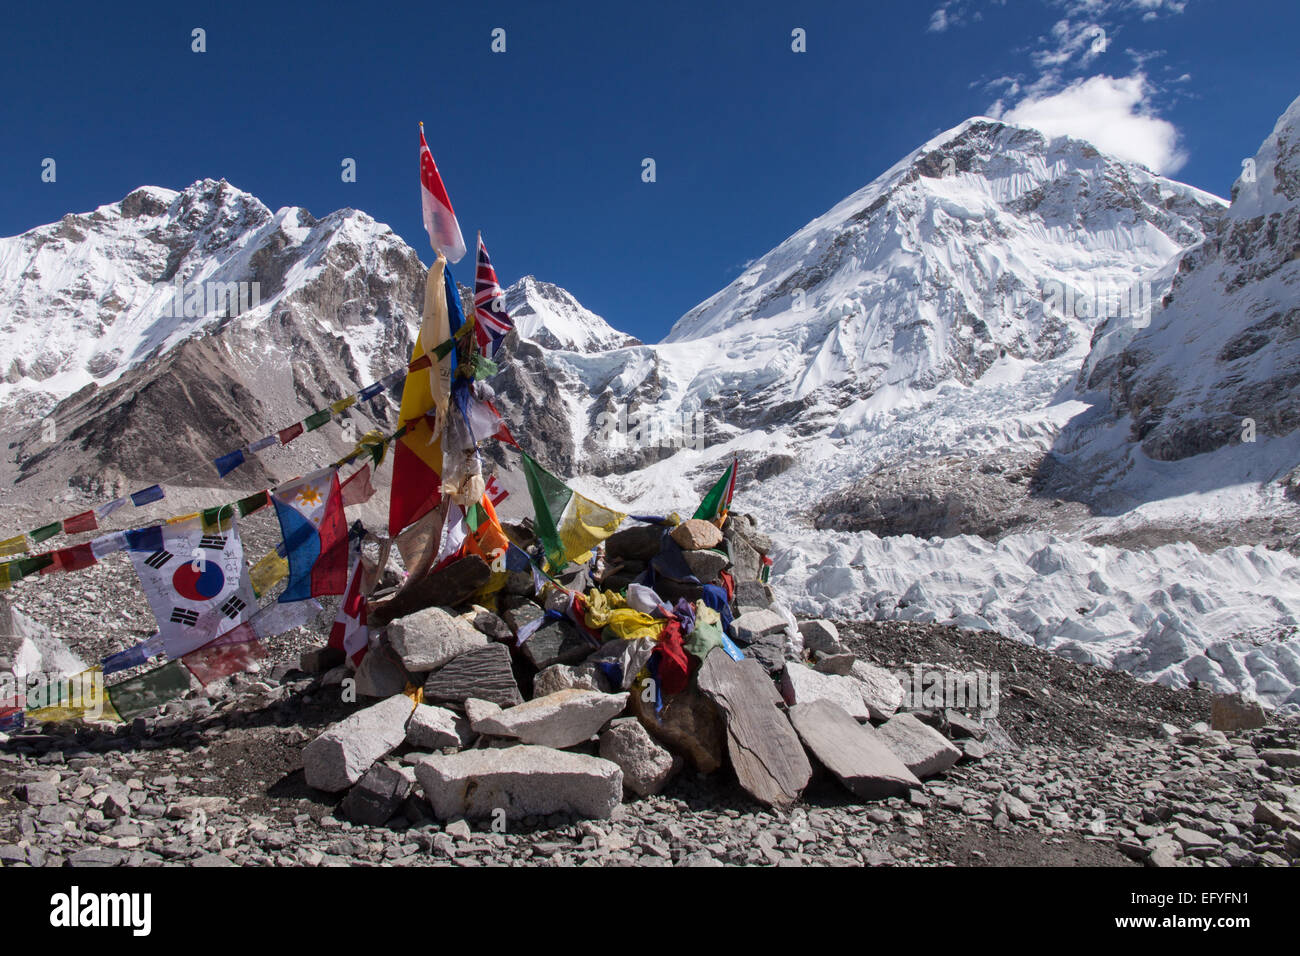 A memorial at Everest Base Camp in Nepal - Stock Image